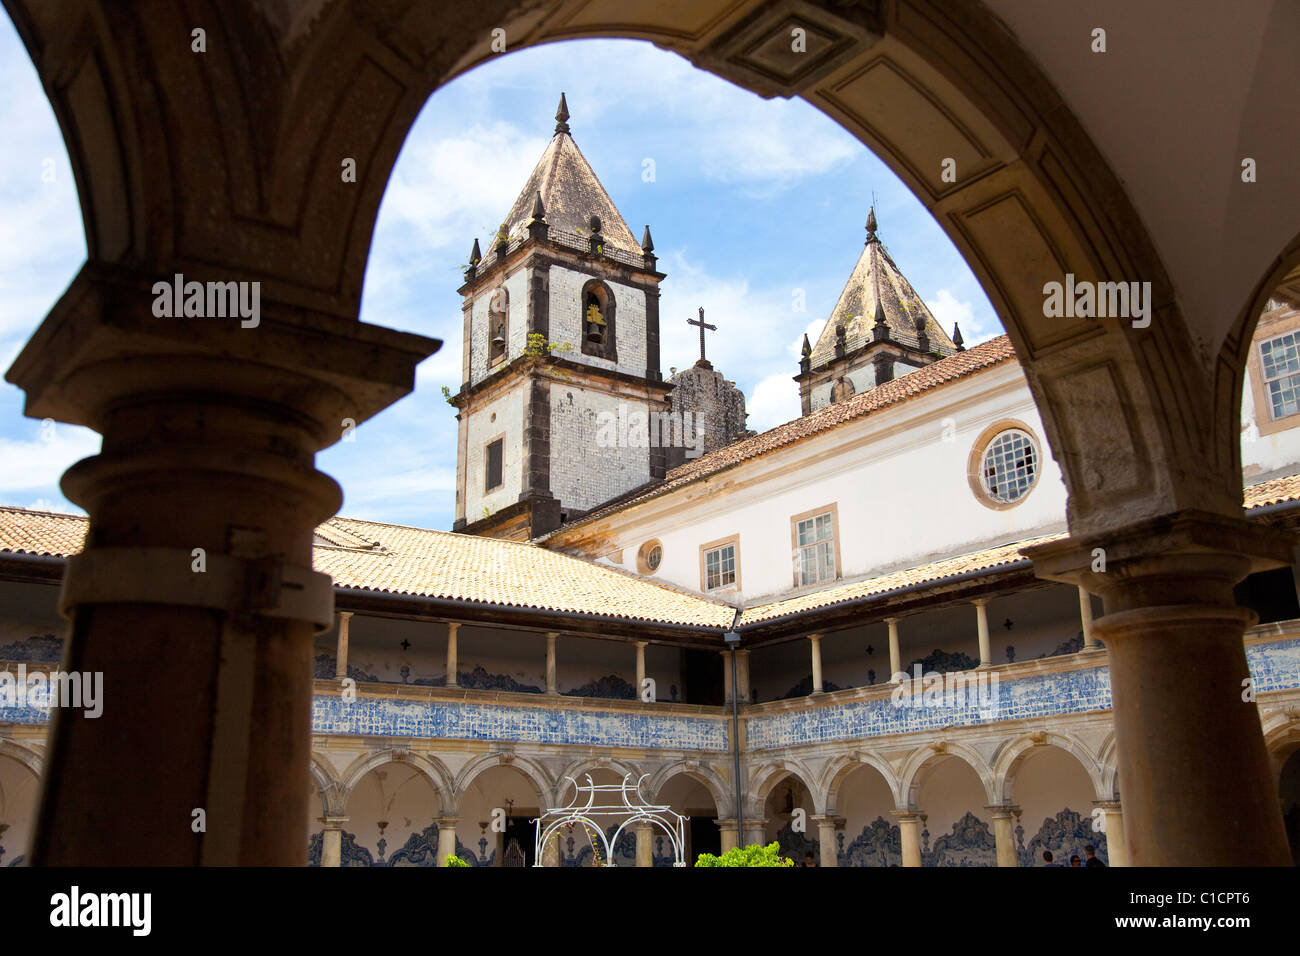 Igreja de Sao Francisco, Church and Convent of St. Francis, Salvador, Brazil - Stock Image